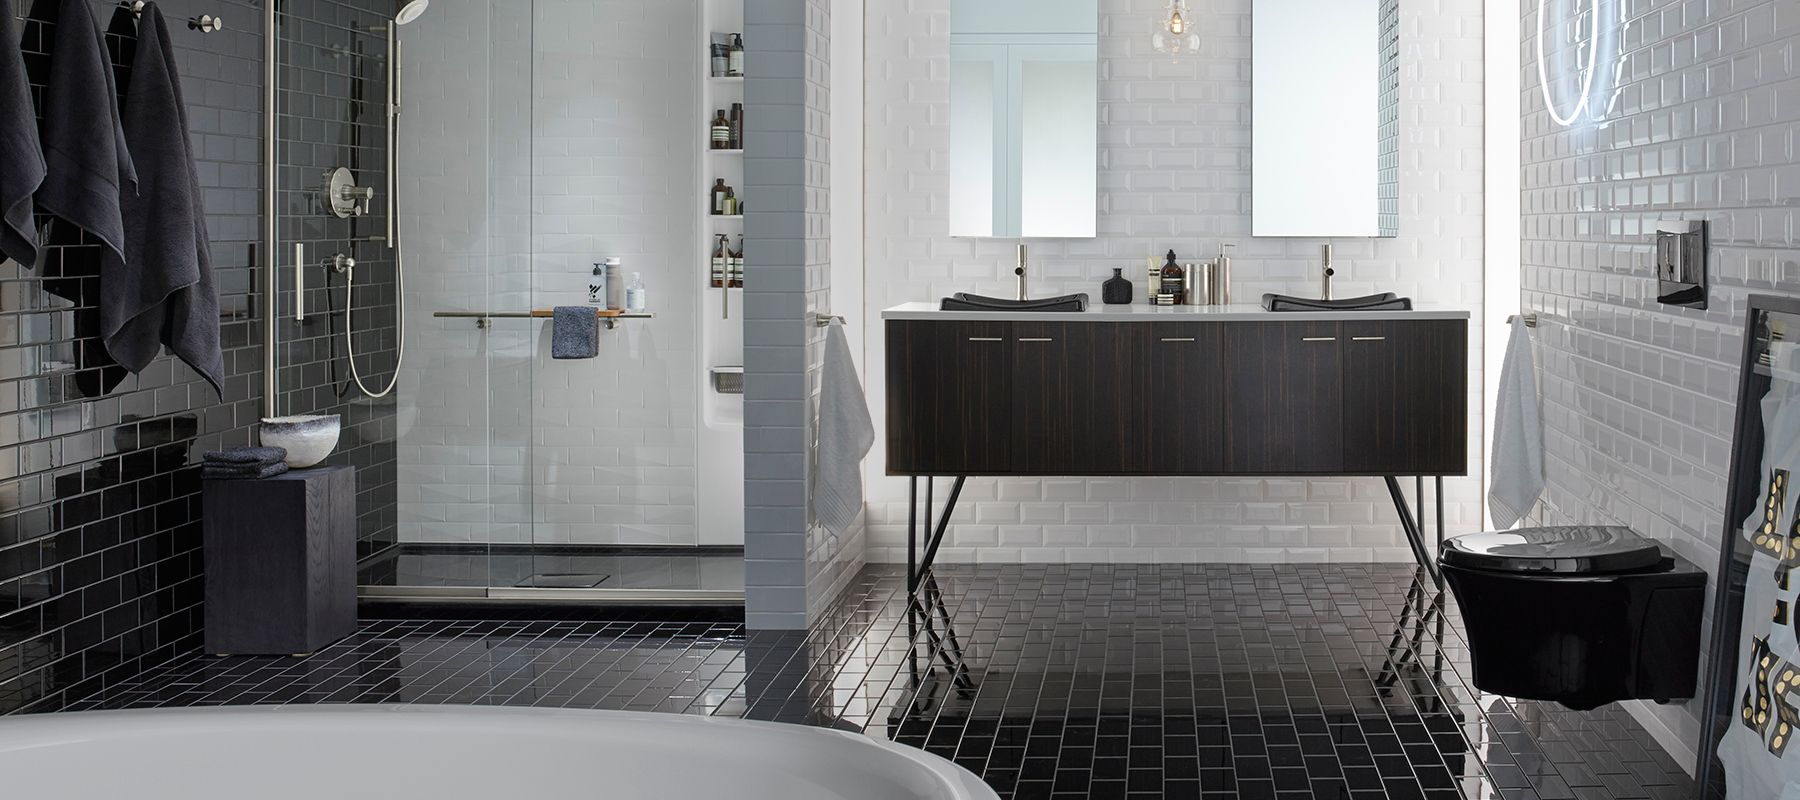 Bathroom Remodel Ideas Kohler bathroom sinks | bathroom | kohler